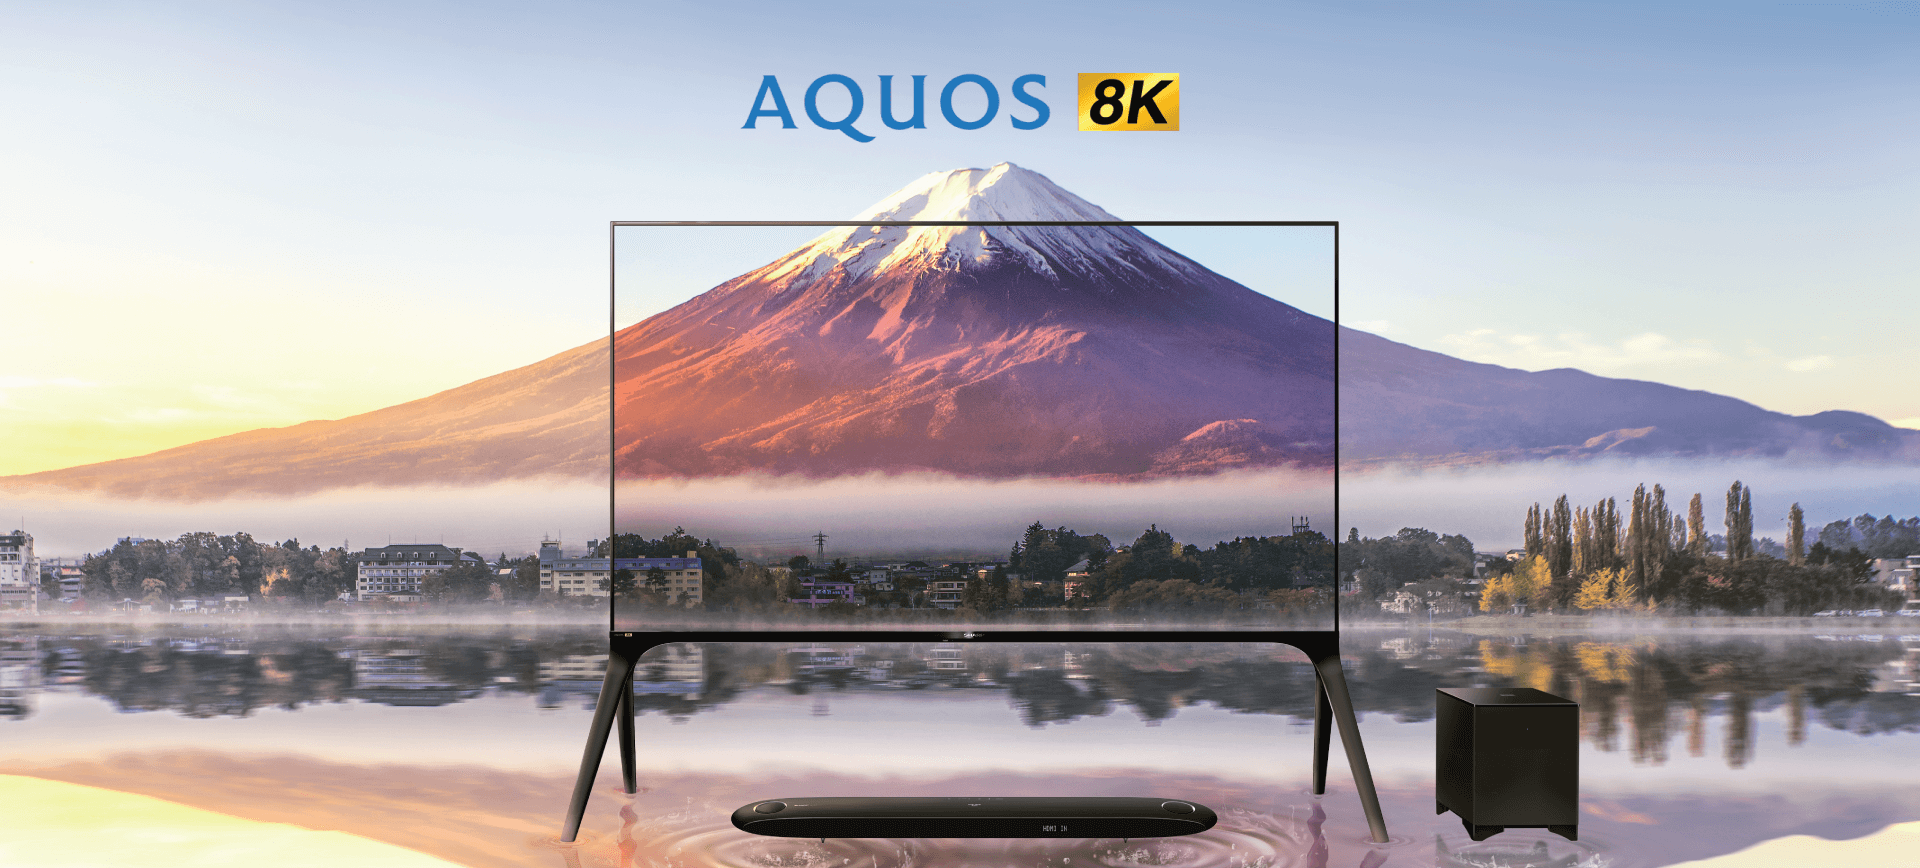 The World of AQUOS 8K Is Here